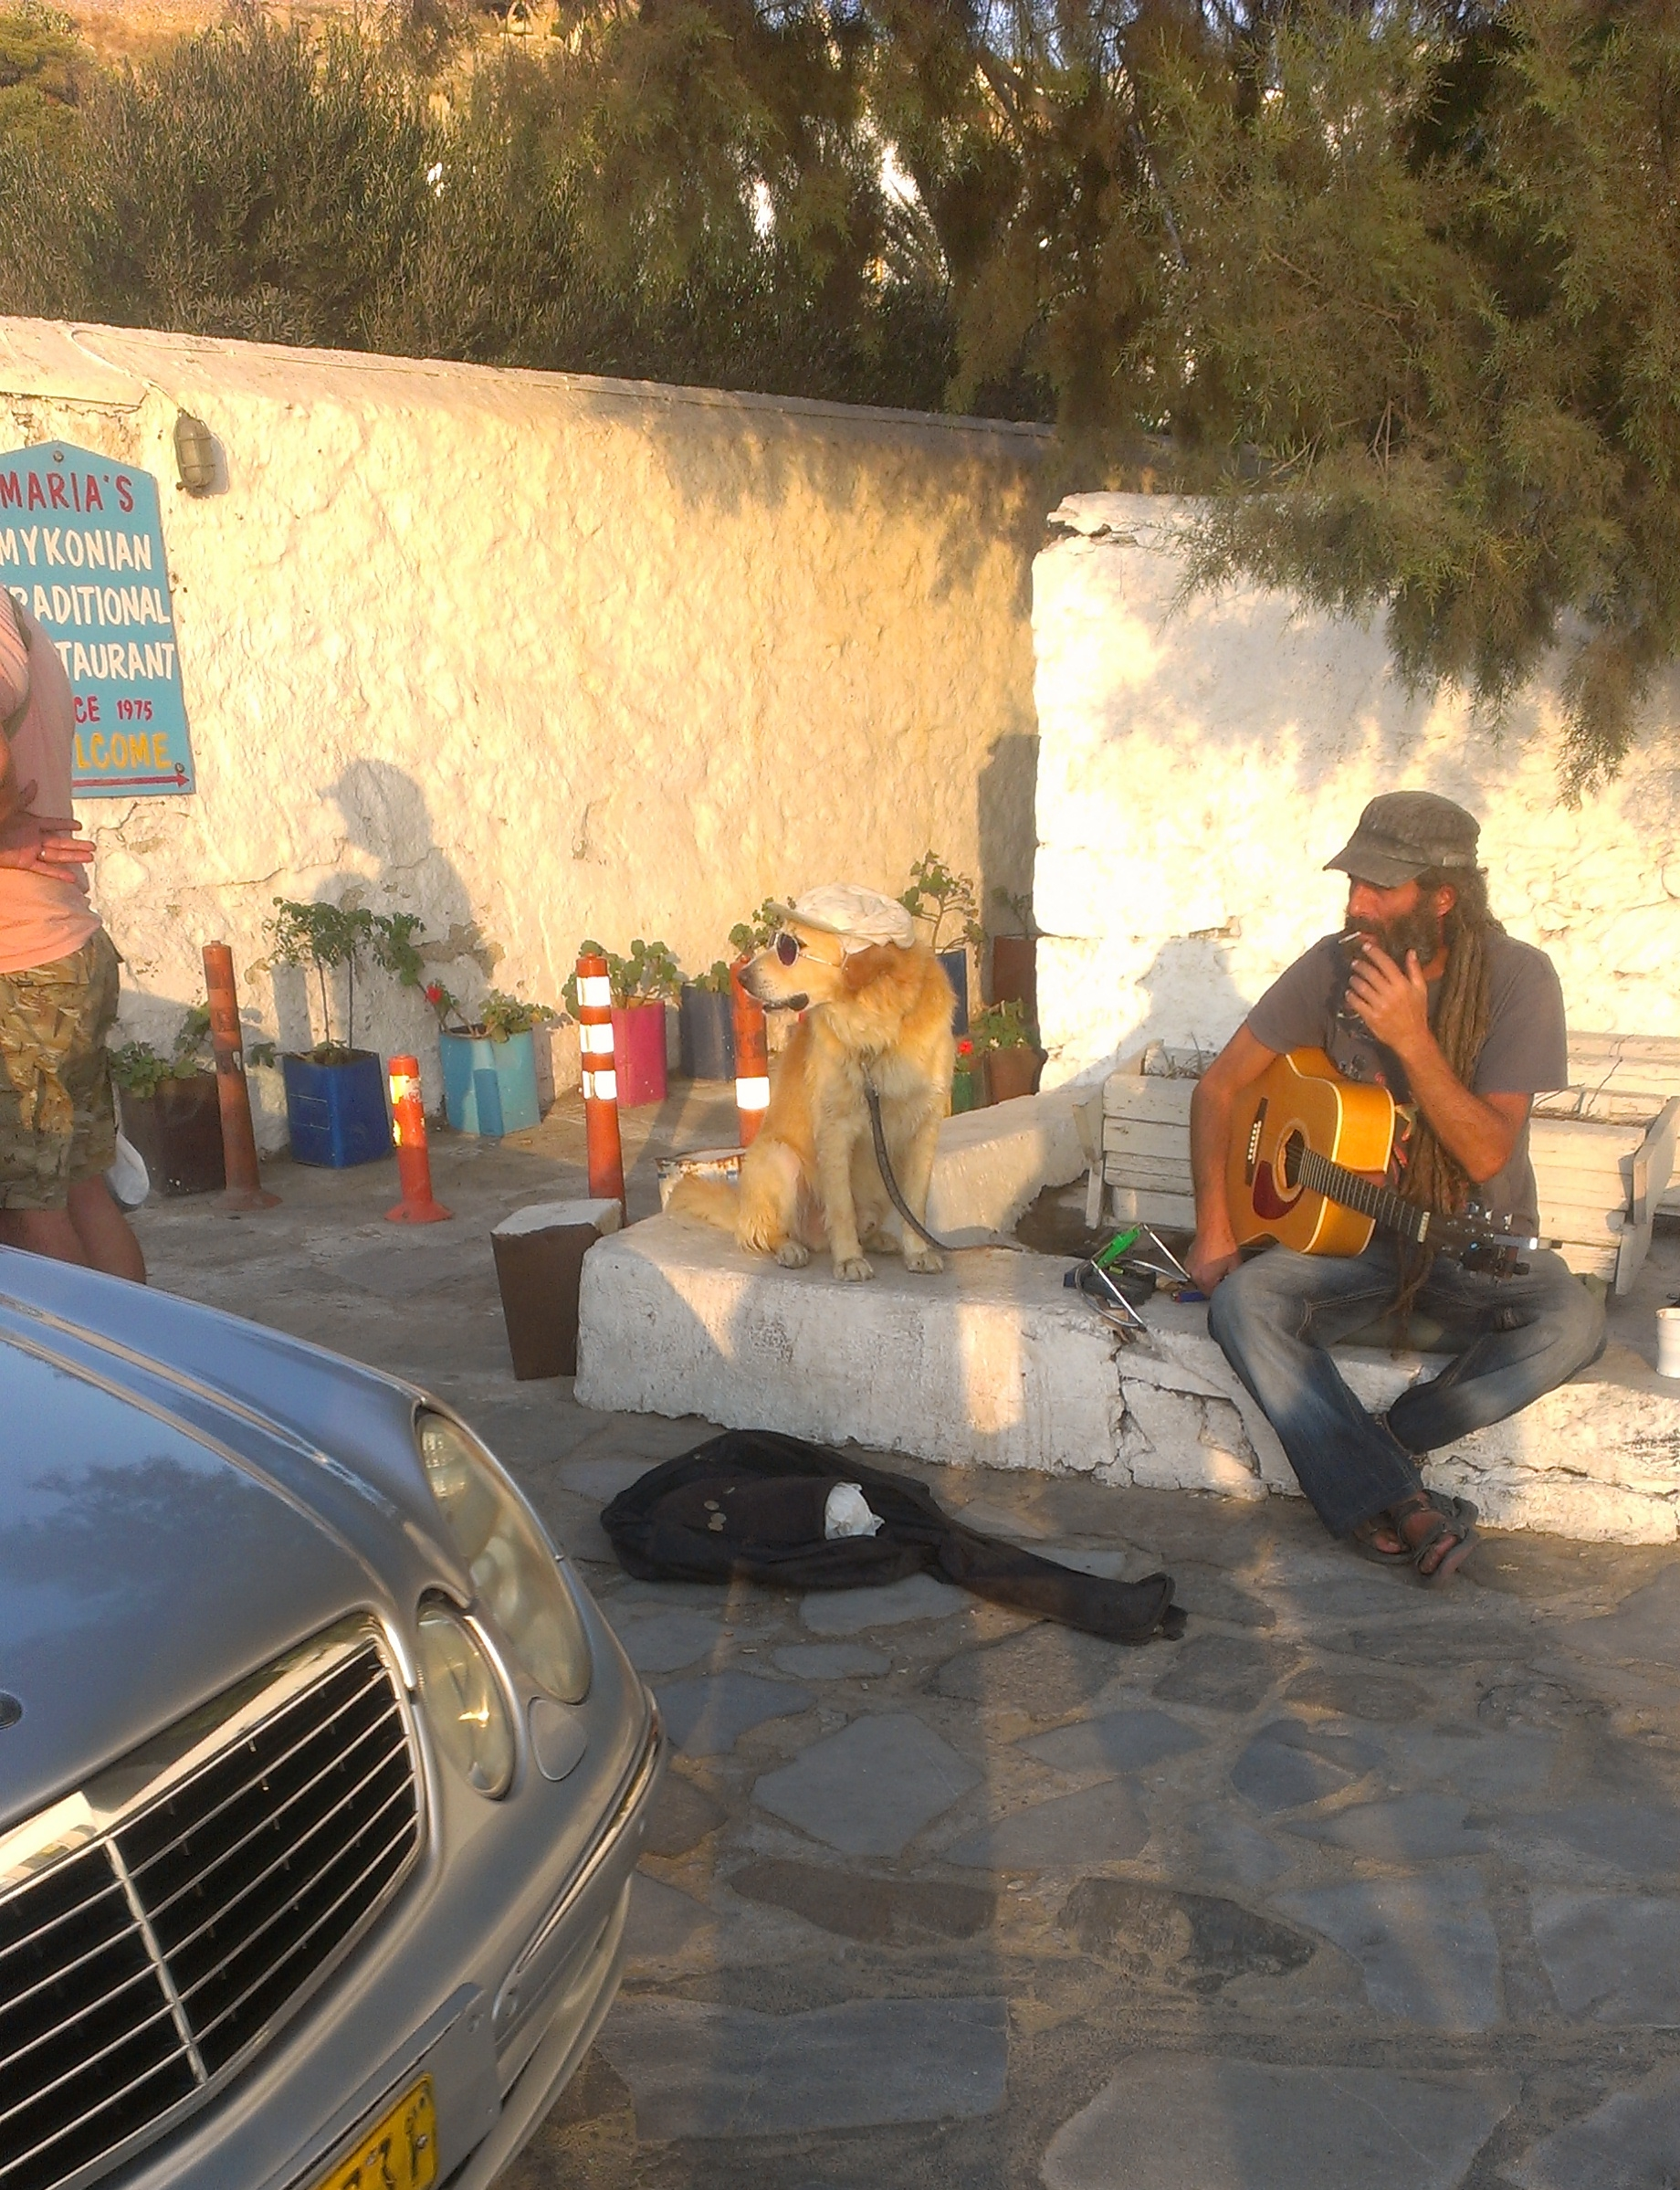 Kind of a crappy shot, but it's not every day you see a dog just chillin with a hat and sunglasses.